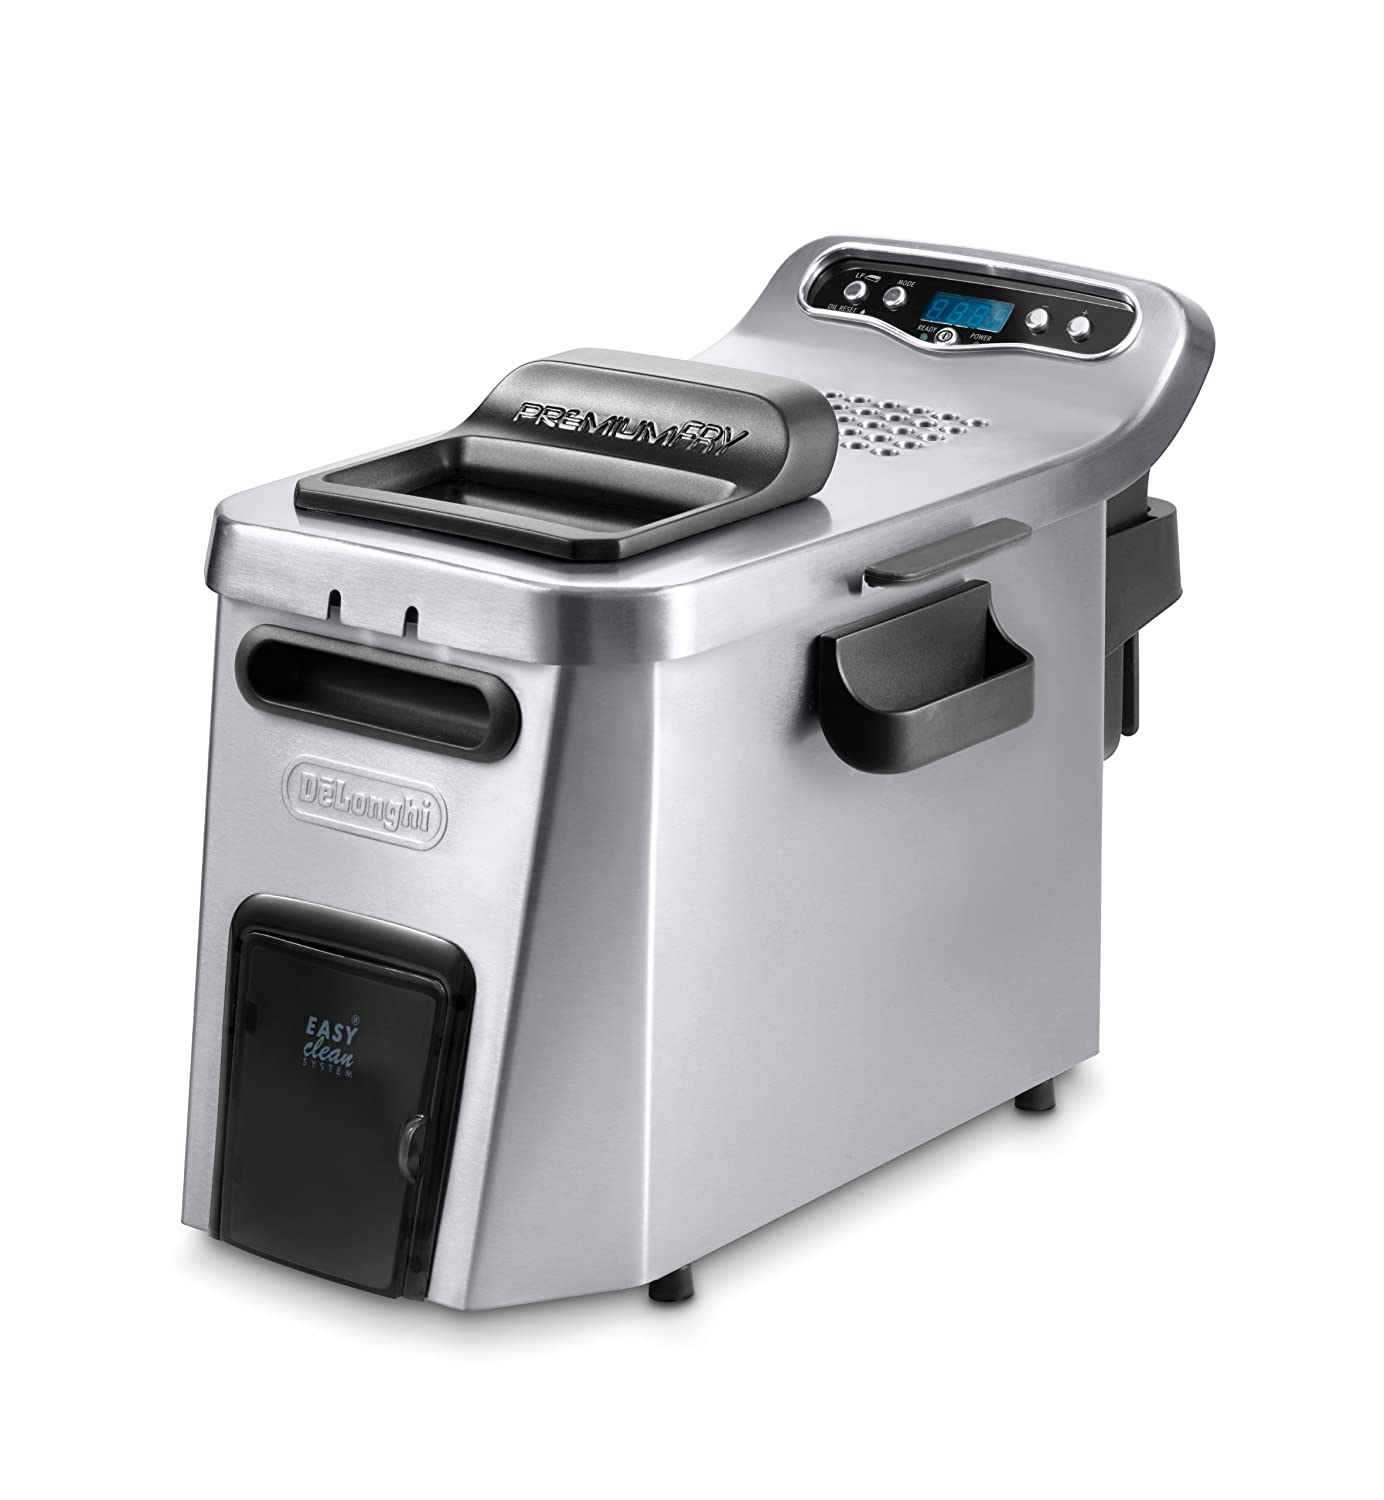 DeLonghi D34528DZ Dual Zone Deep Fryer